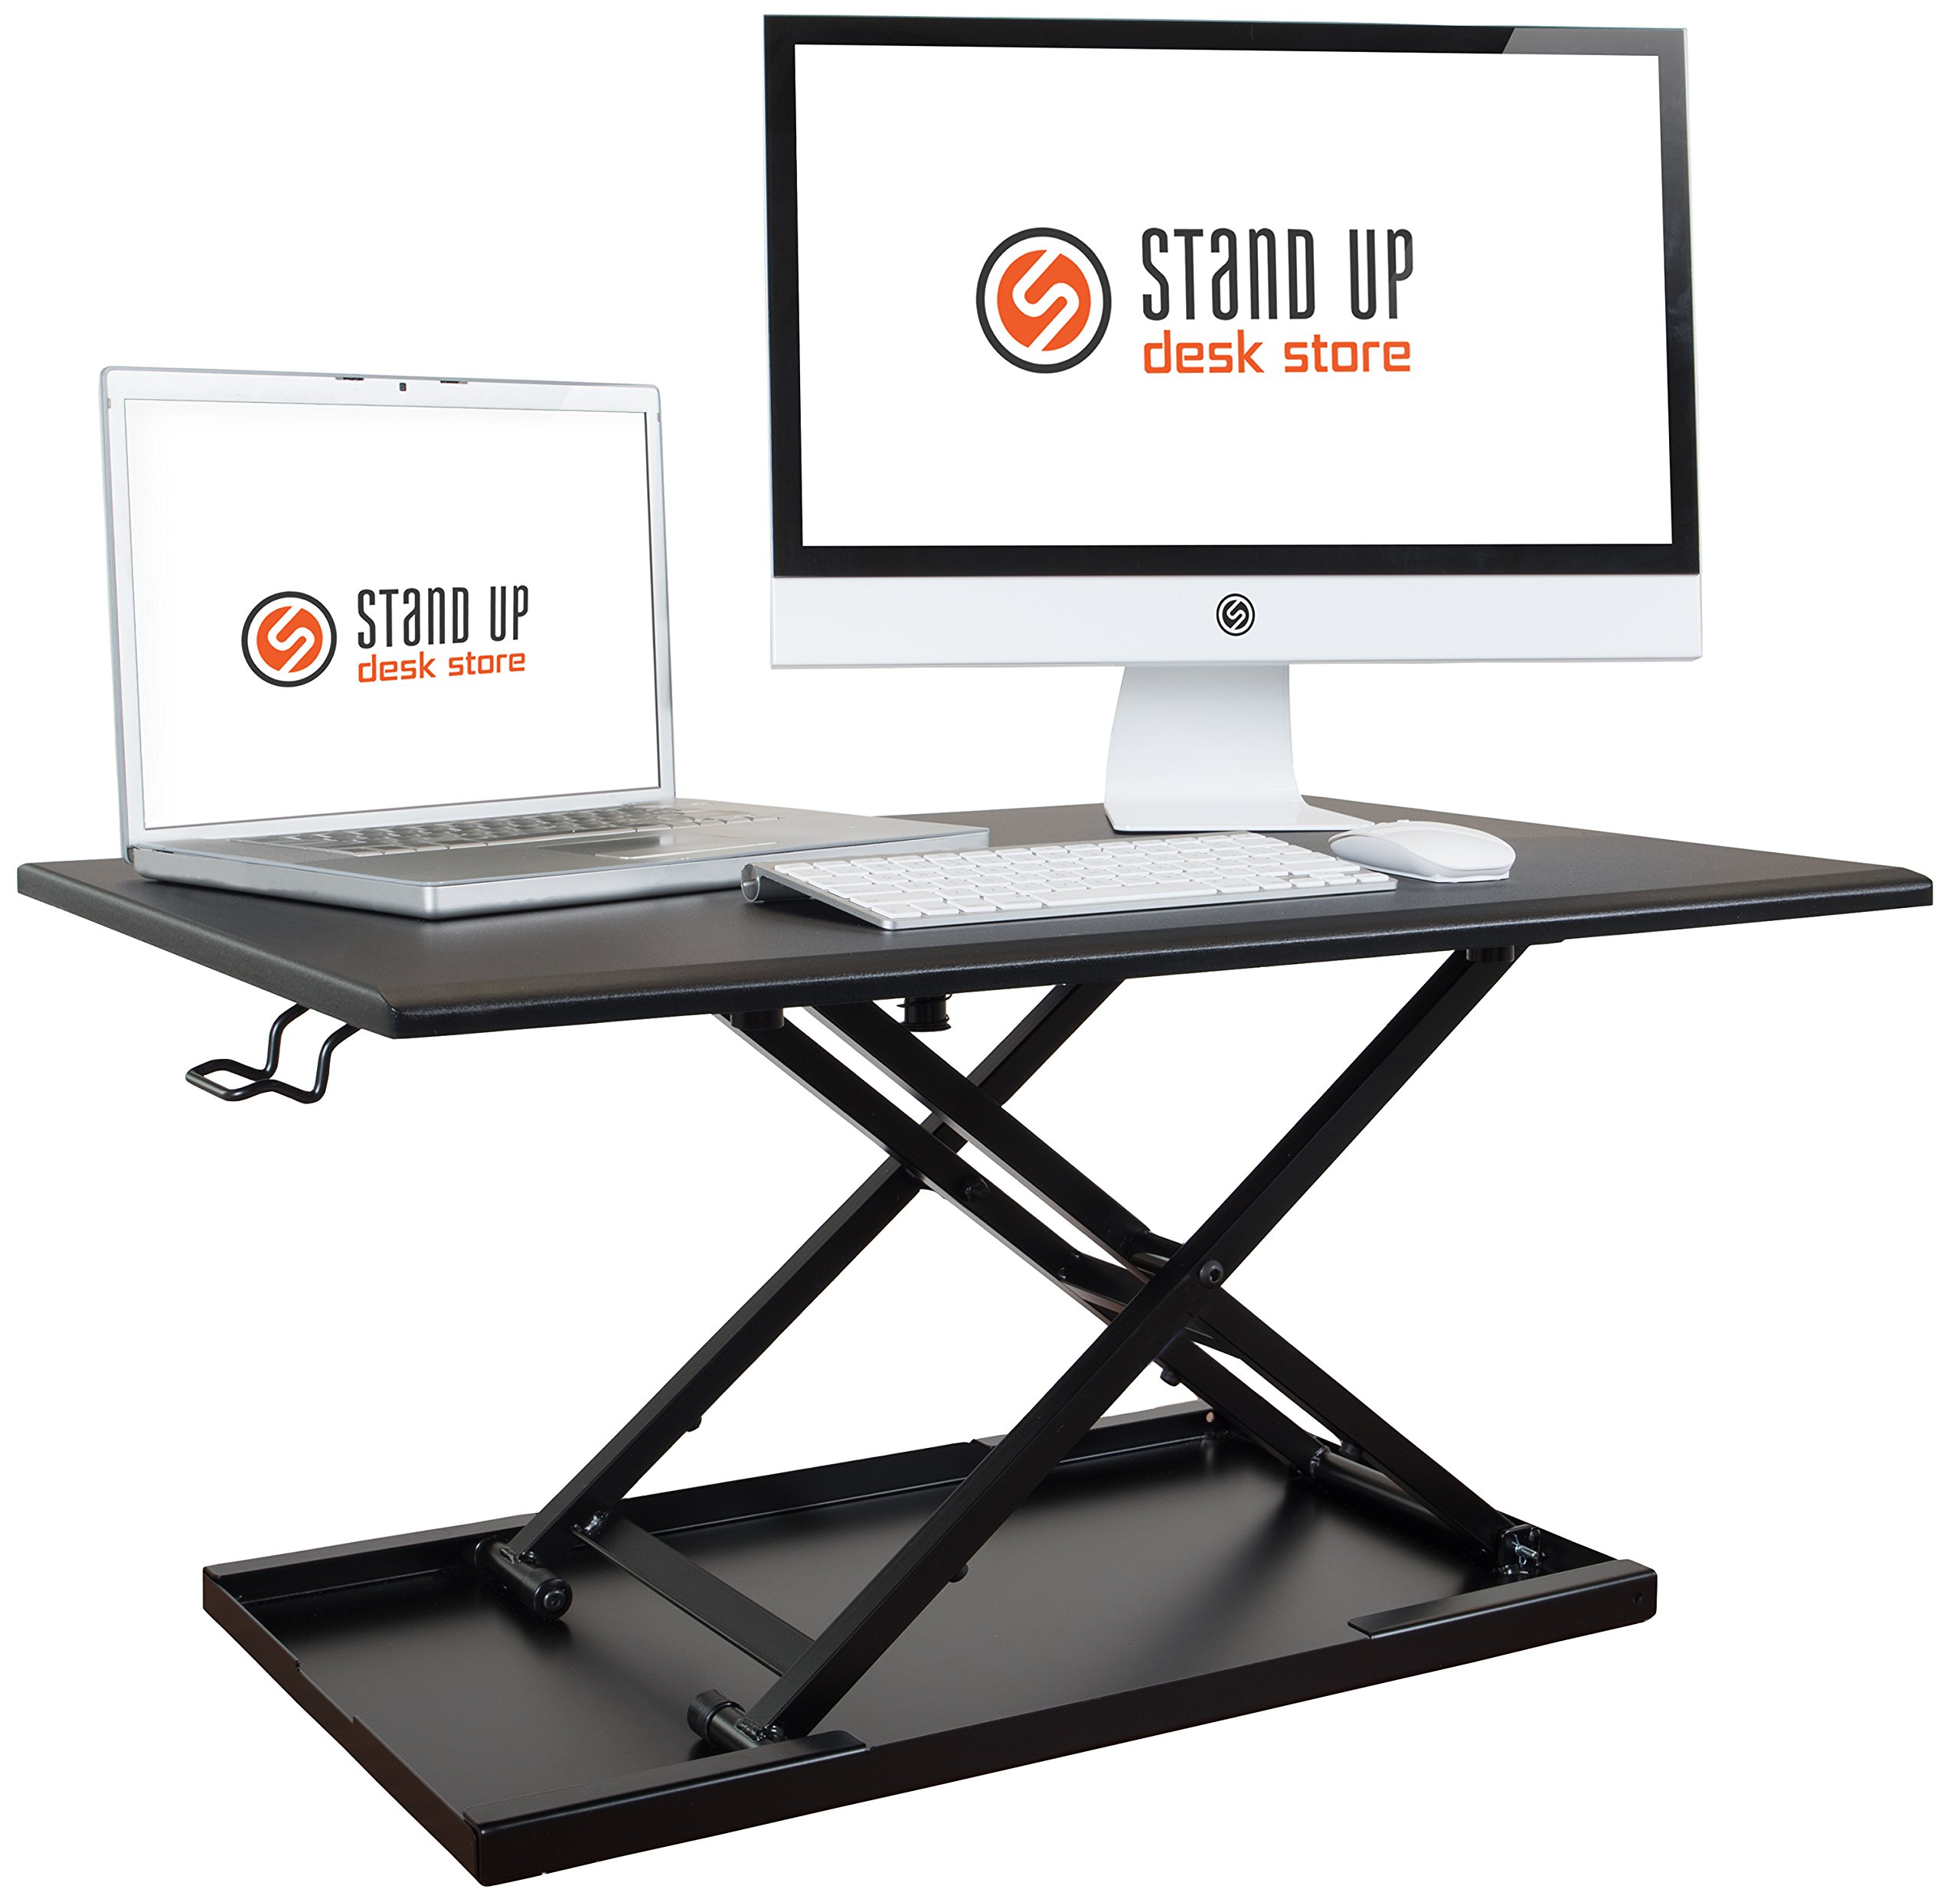 Stand Up Desk Store Air Rise Standing Desk Converter Sit to Stand with your current Desk in Seconds, 32'' L, Black